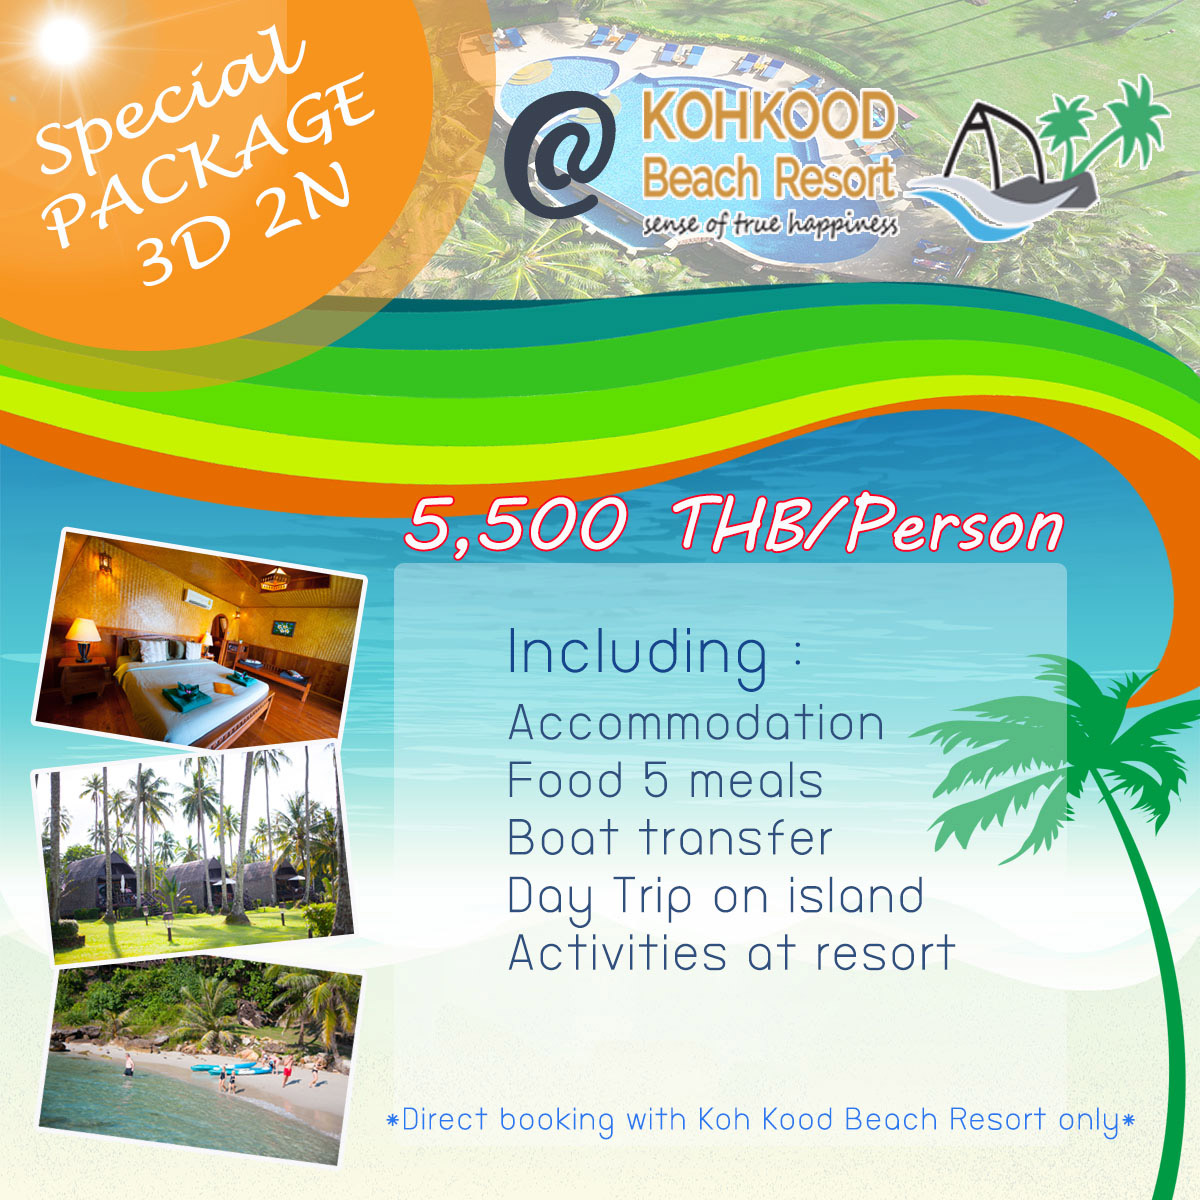 Koh Kood Beach Resort Package 3 Days 2 Nights